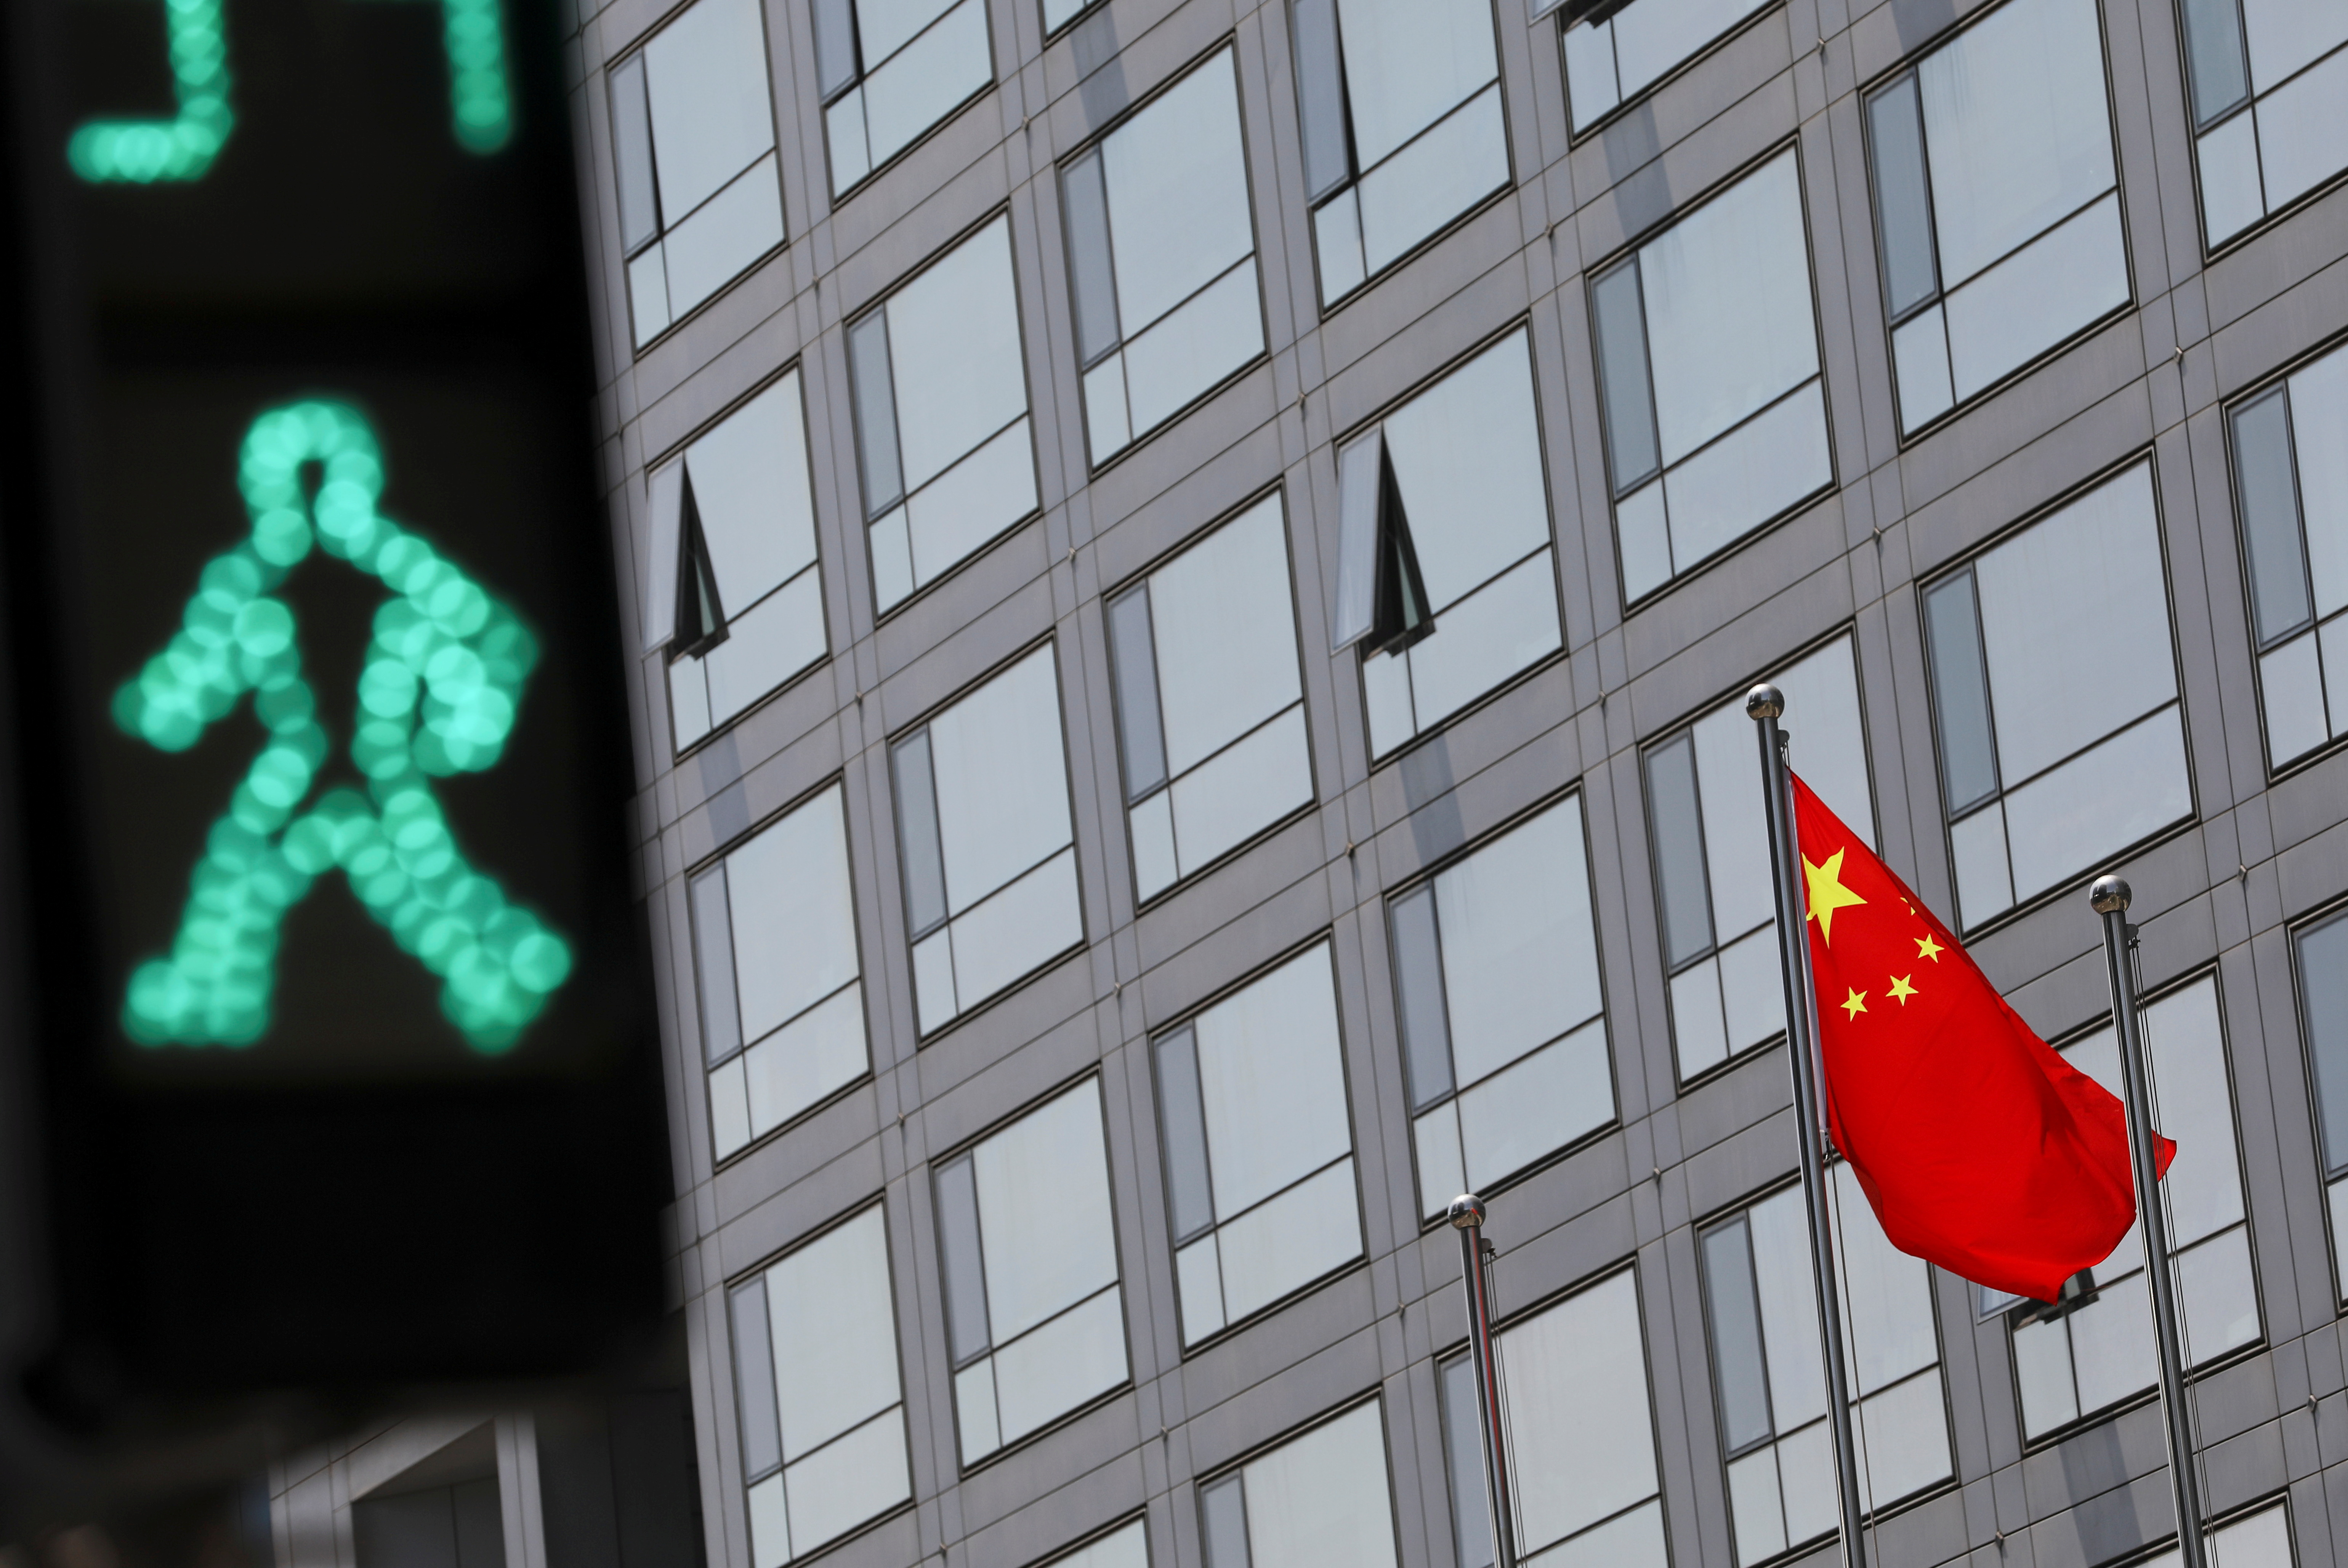 A Chinese national flag flutters outside the China Securities Regulatory Commission (CSRC) building on the Financial Street in Beijing, China July 9, 2021. REUTERS/Tingshu Wang/File Photo